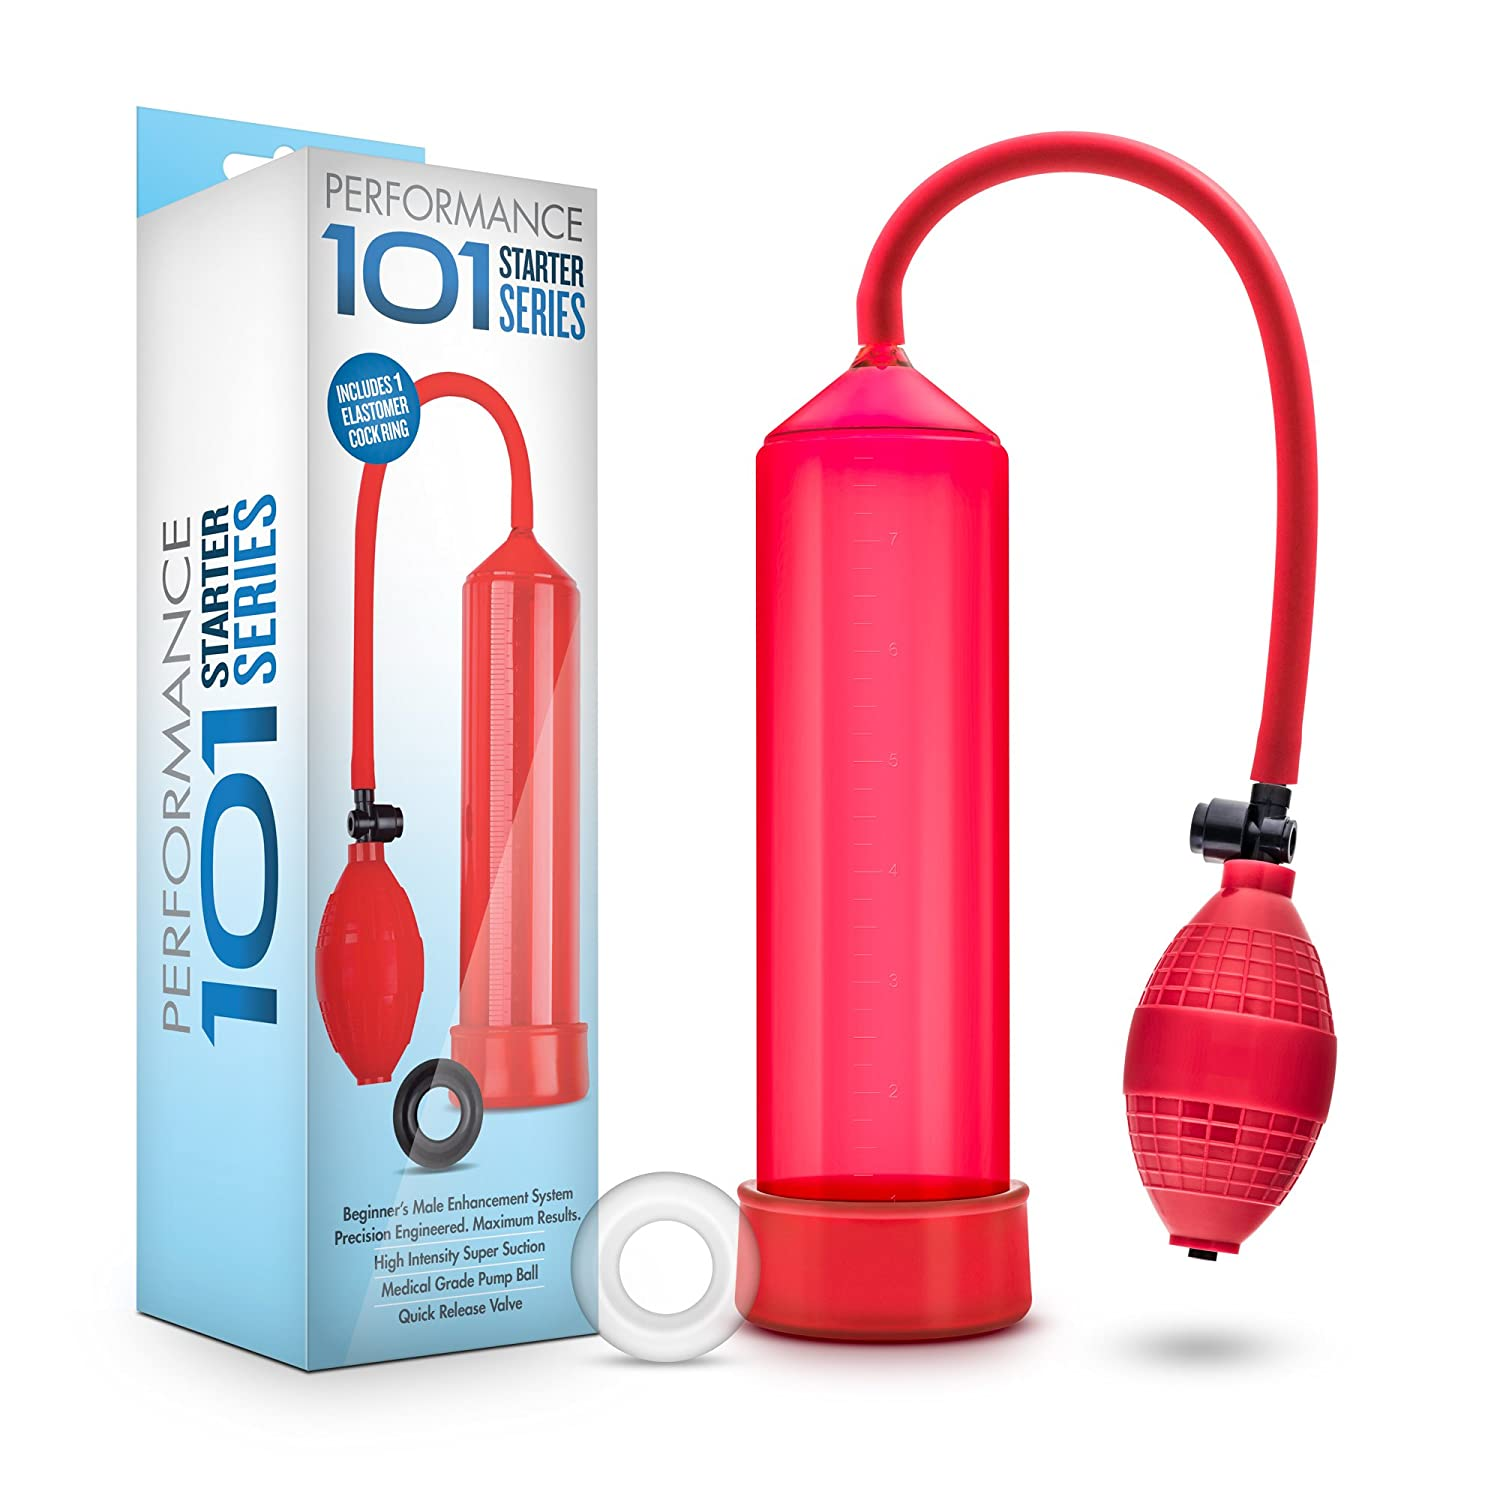 Amazon.com: Beginner Penis Pump - Male Enhancement Erection Vacuum Chamber - Sex Toy for Men (Red): Health & Personal Care